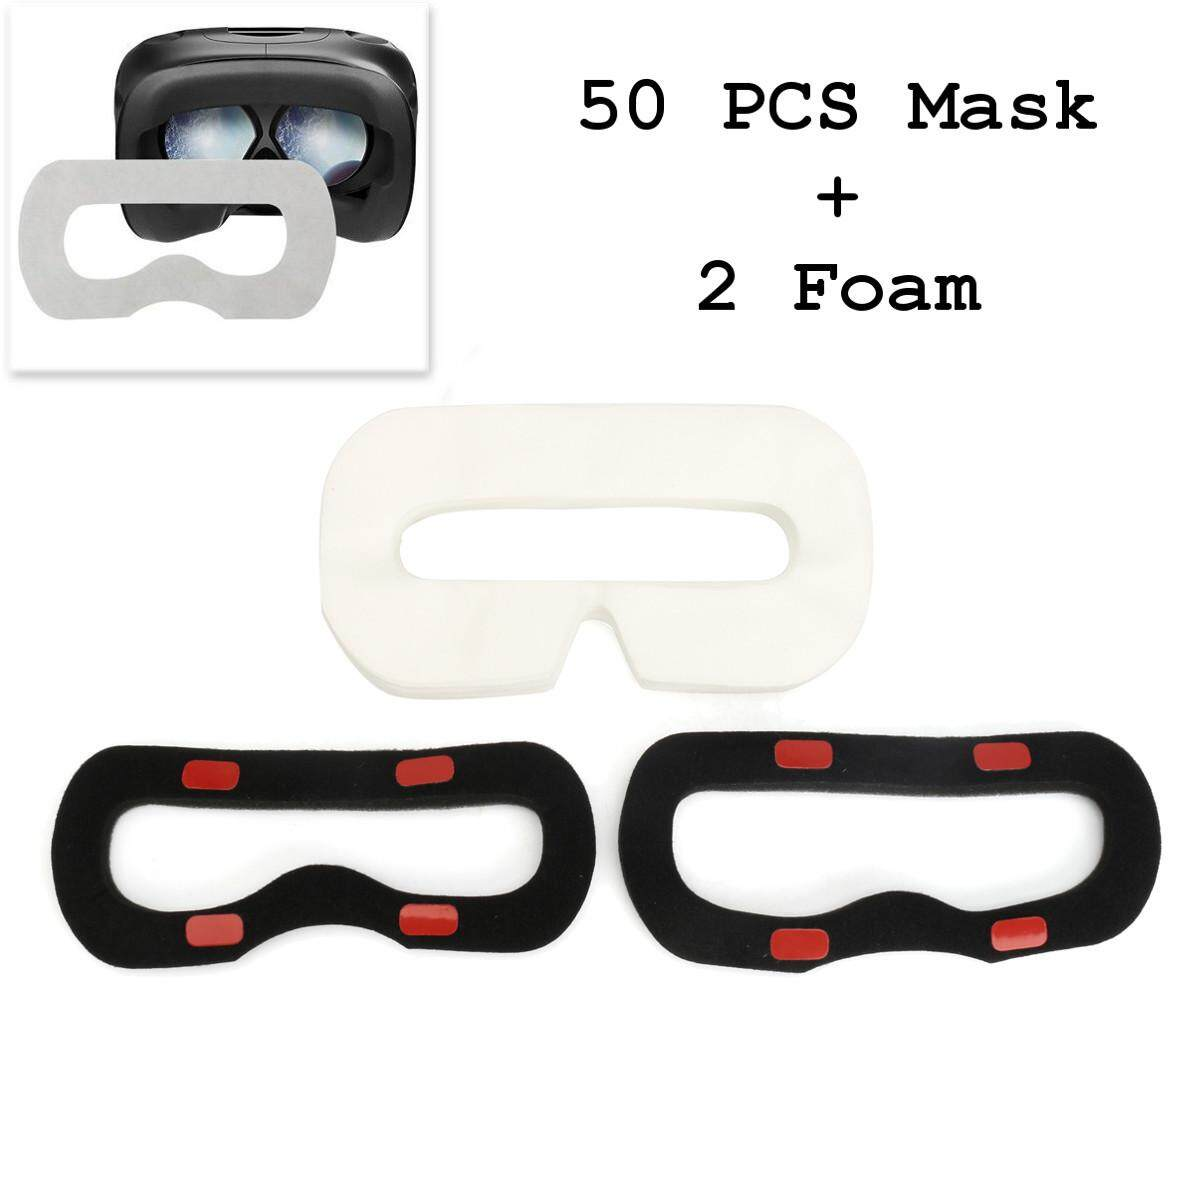 50pcs Disposable Sanitary Facial Mask/eye Mask+ 2 Foam For Htc Vive Vr Headset By Glimmer.